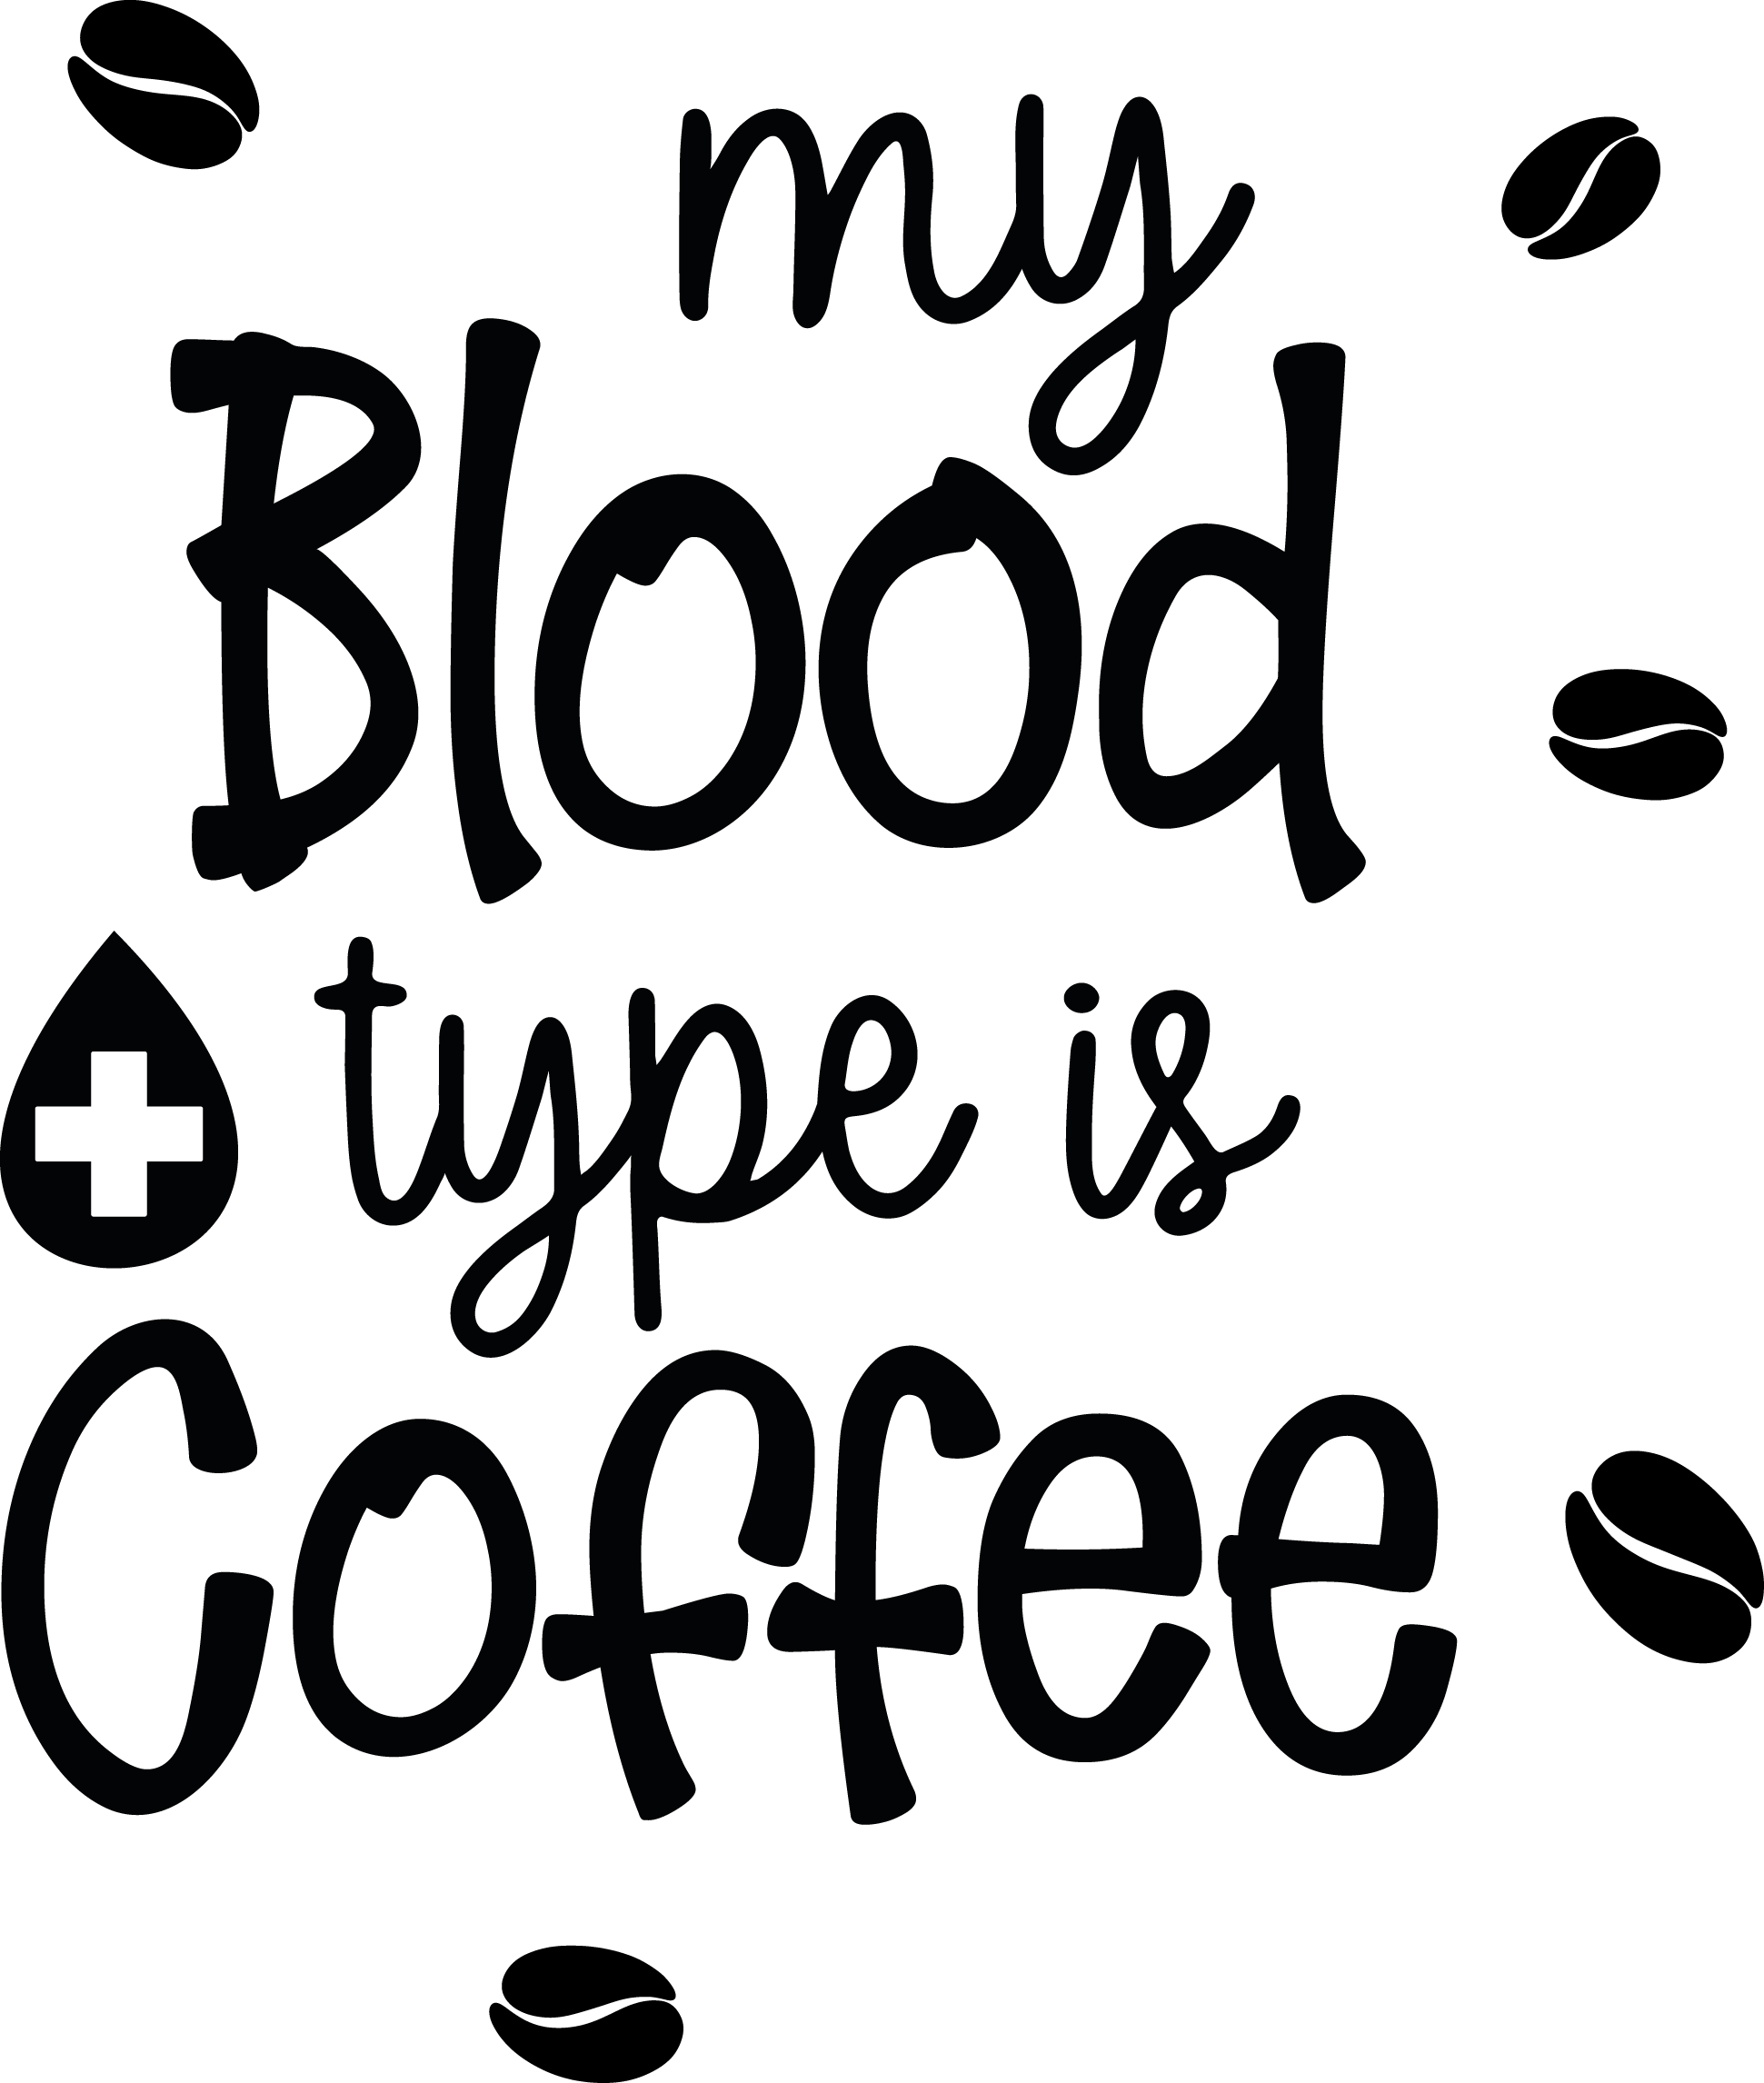 Coffee Quotes Png Free Coffee Quotes Png Transparent Images 77284 Pngio